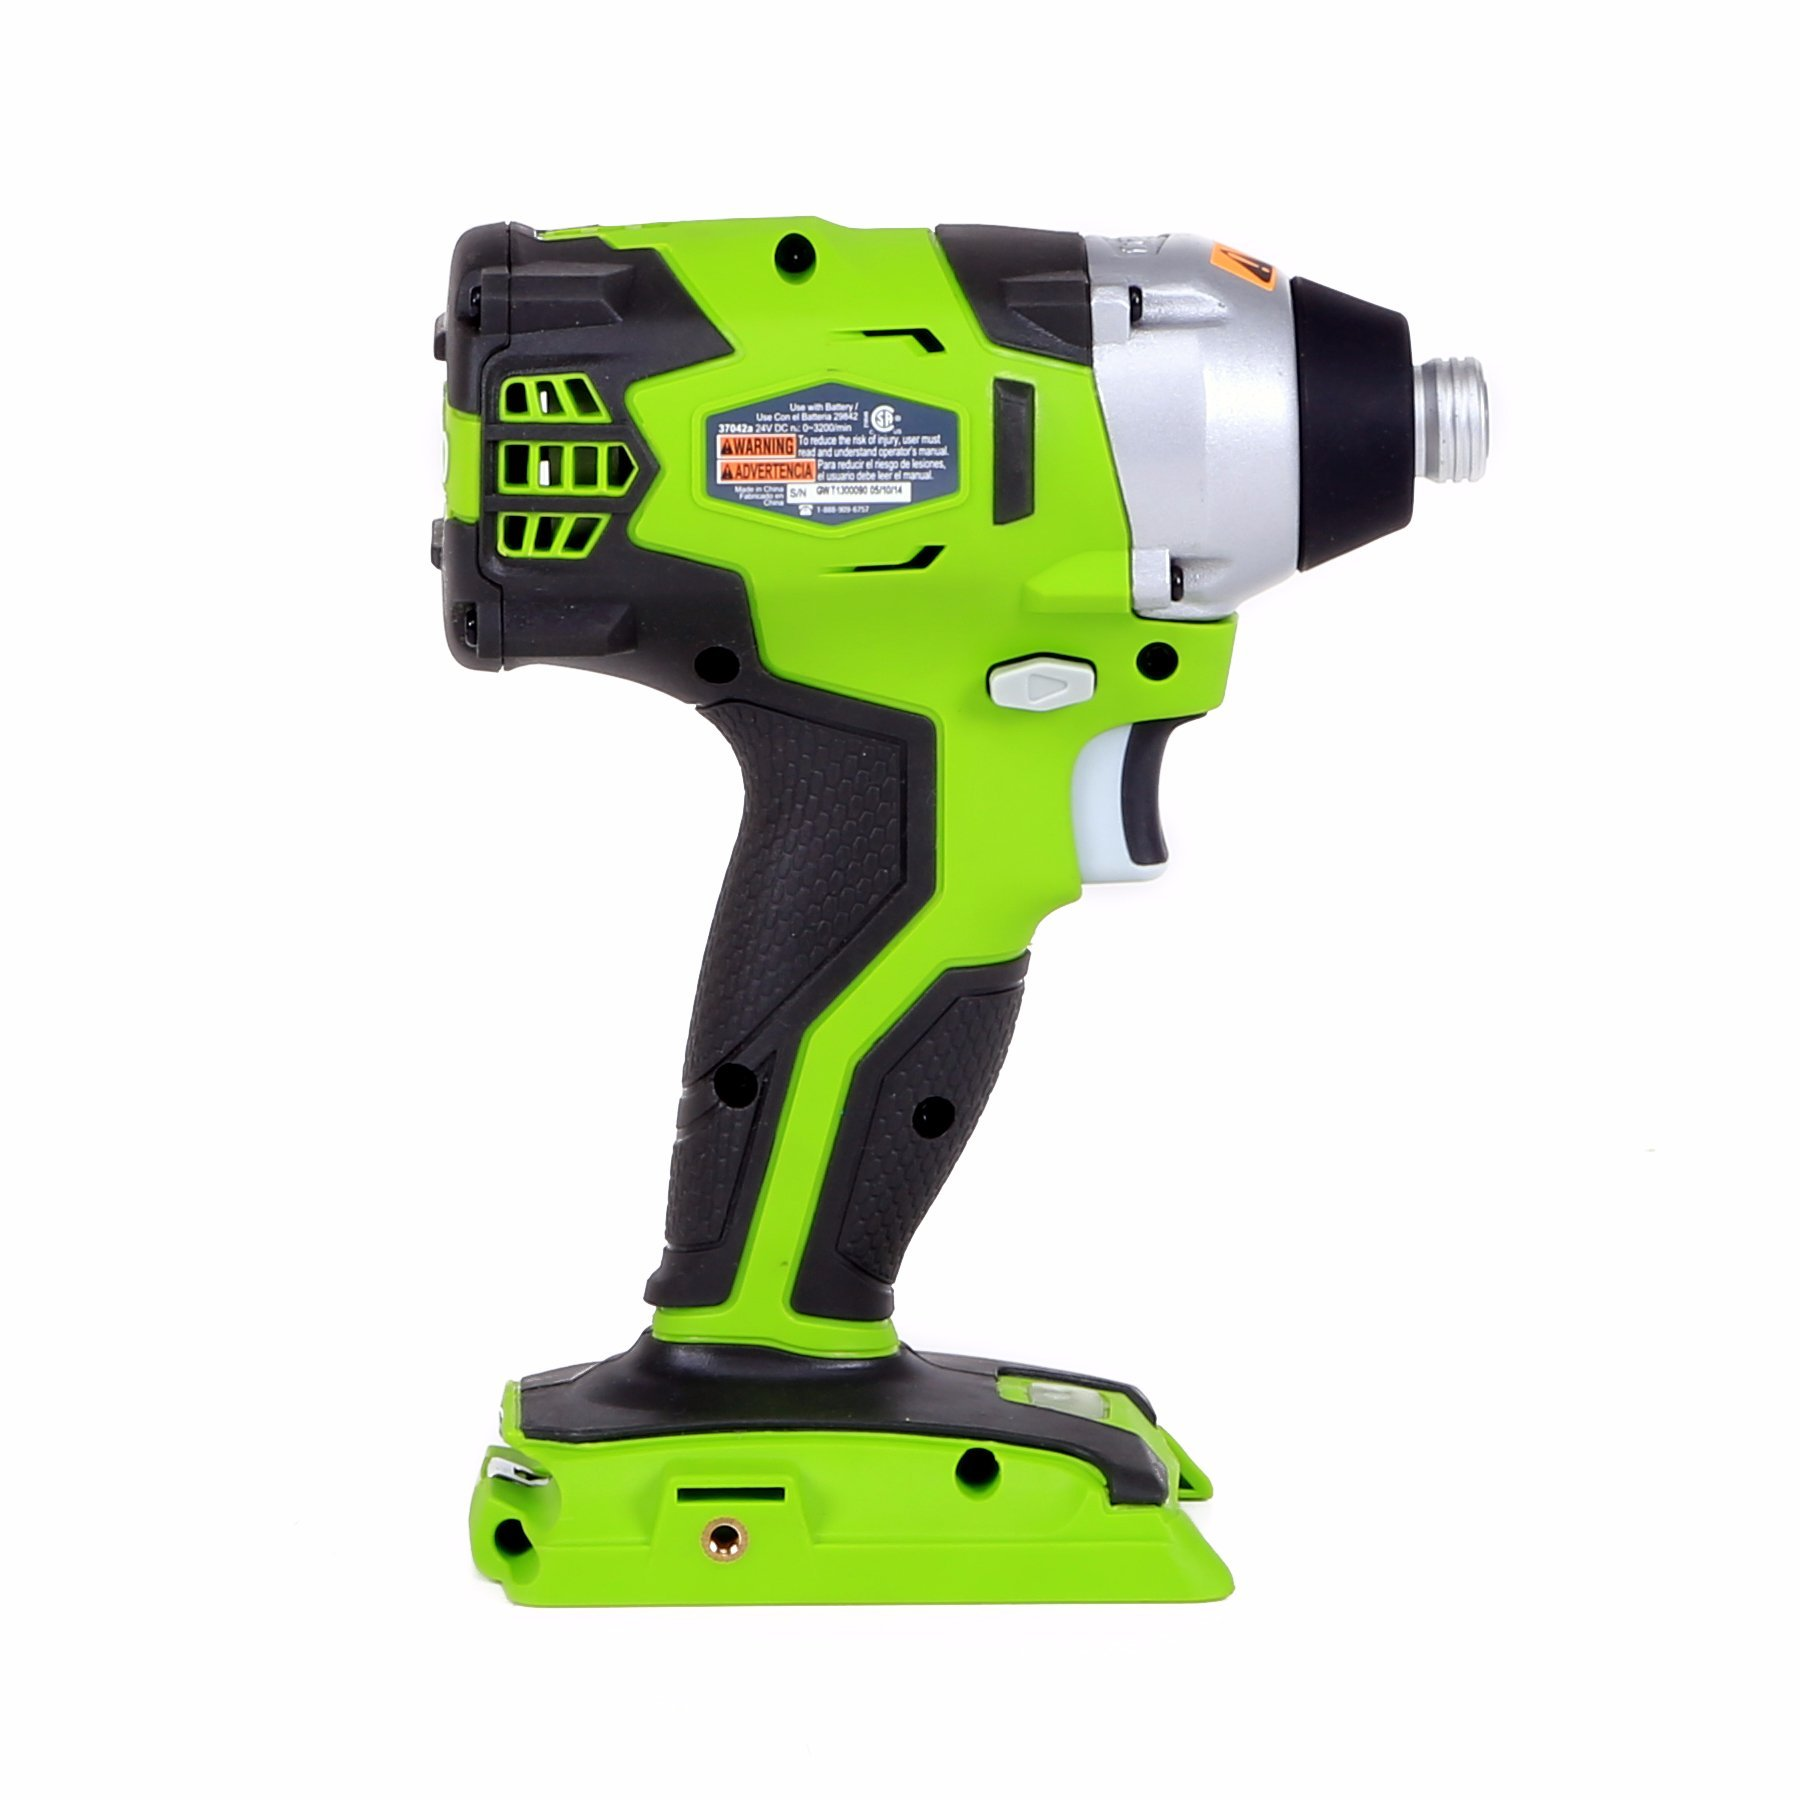 Greenworks 37042A 24V Cordless Impact Driver, Green